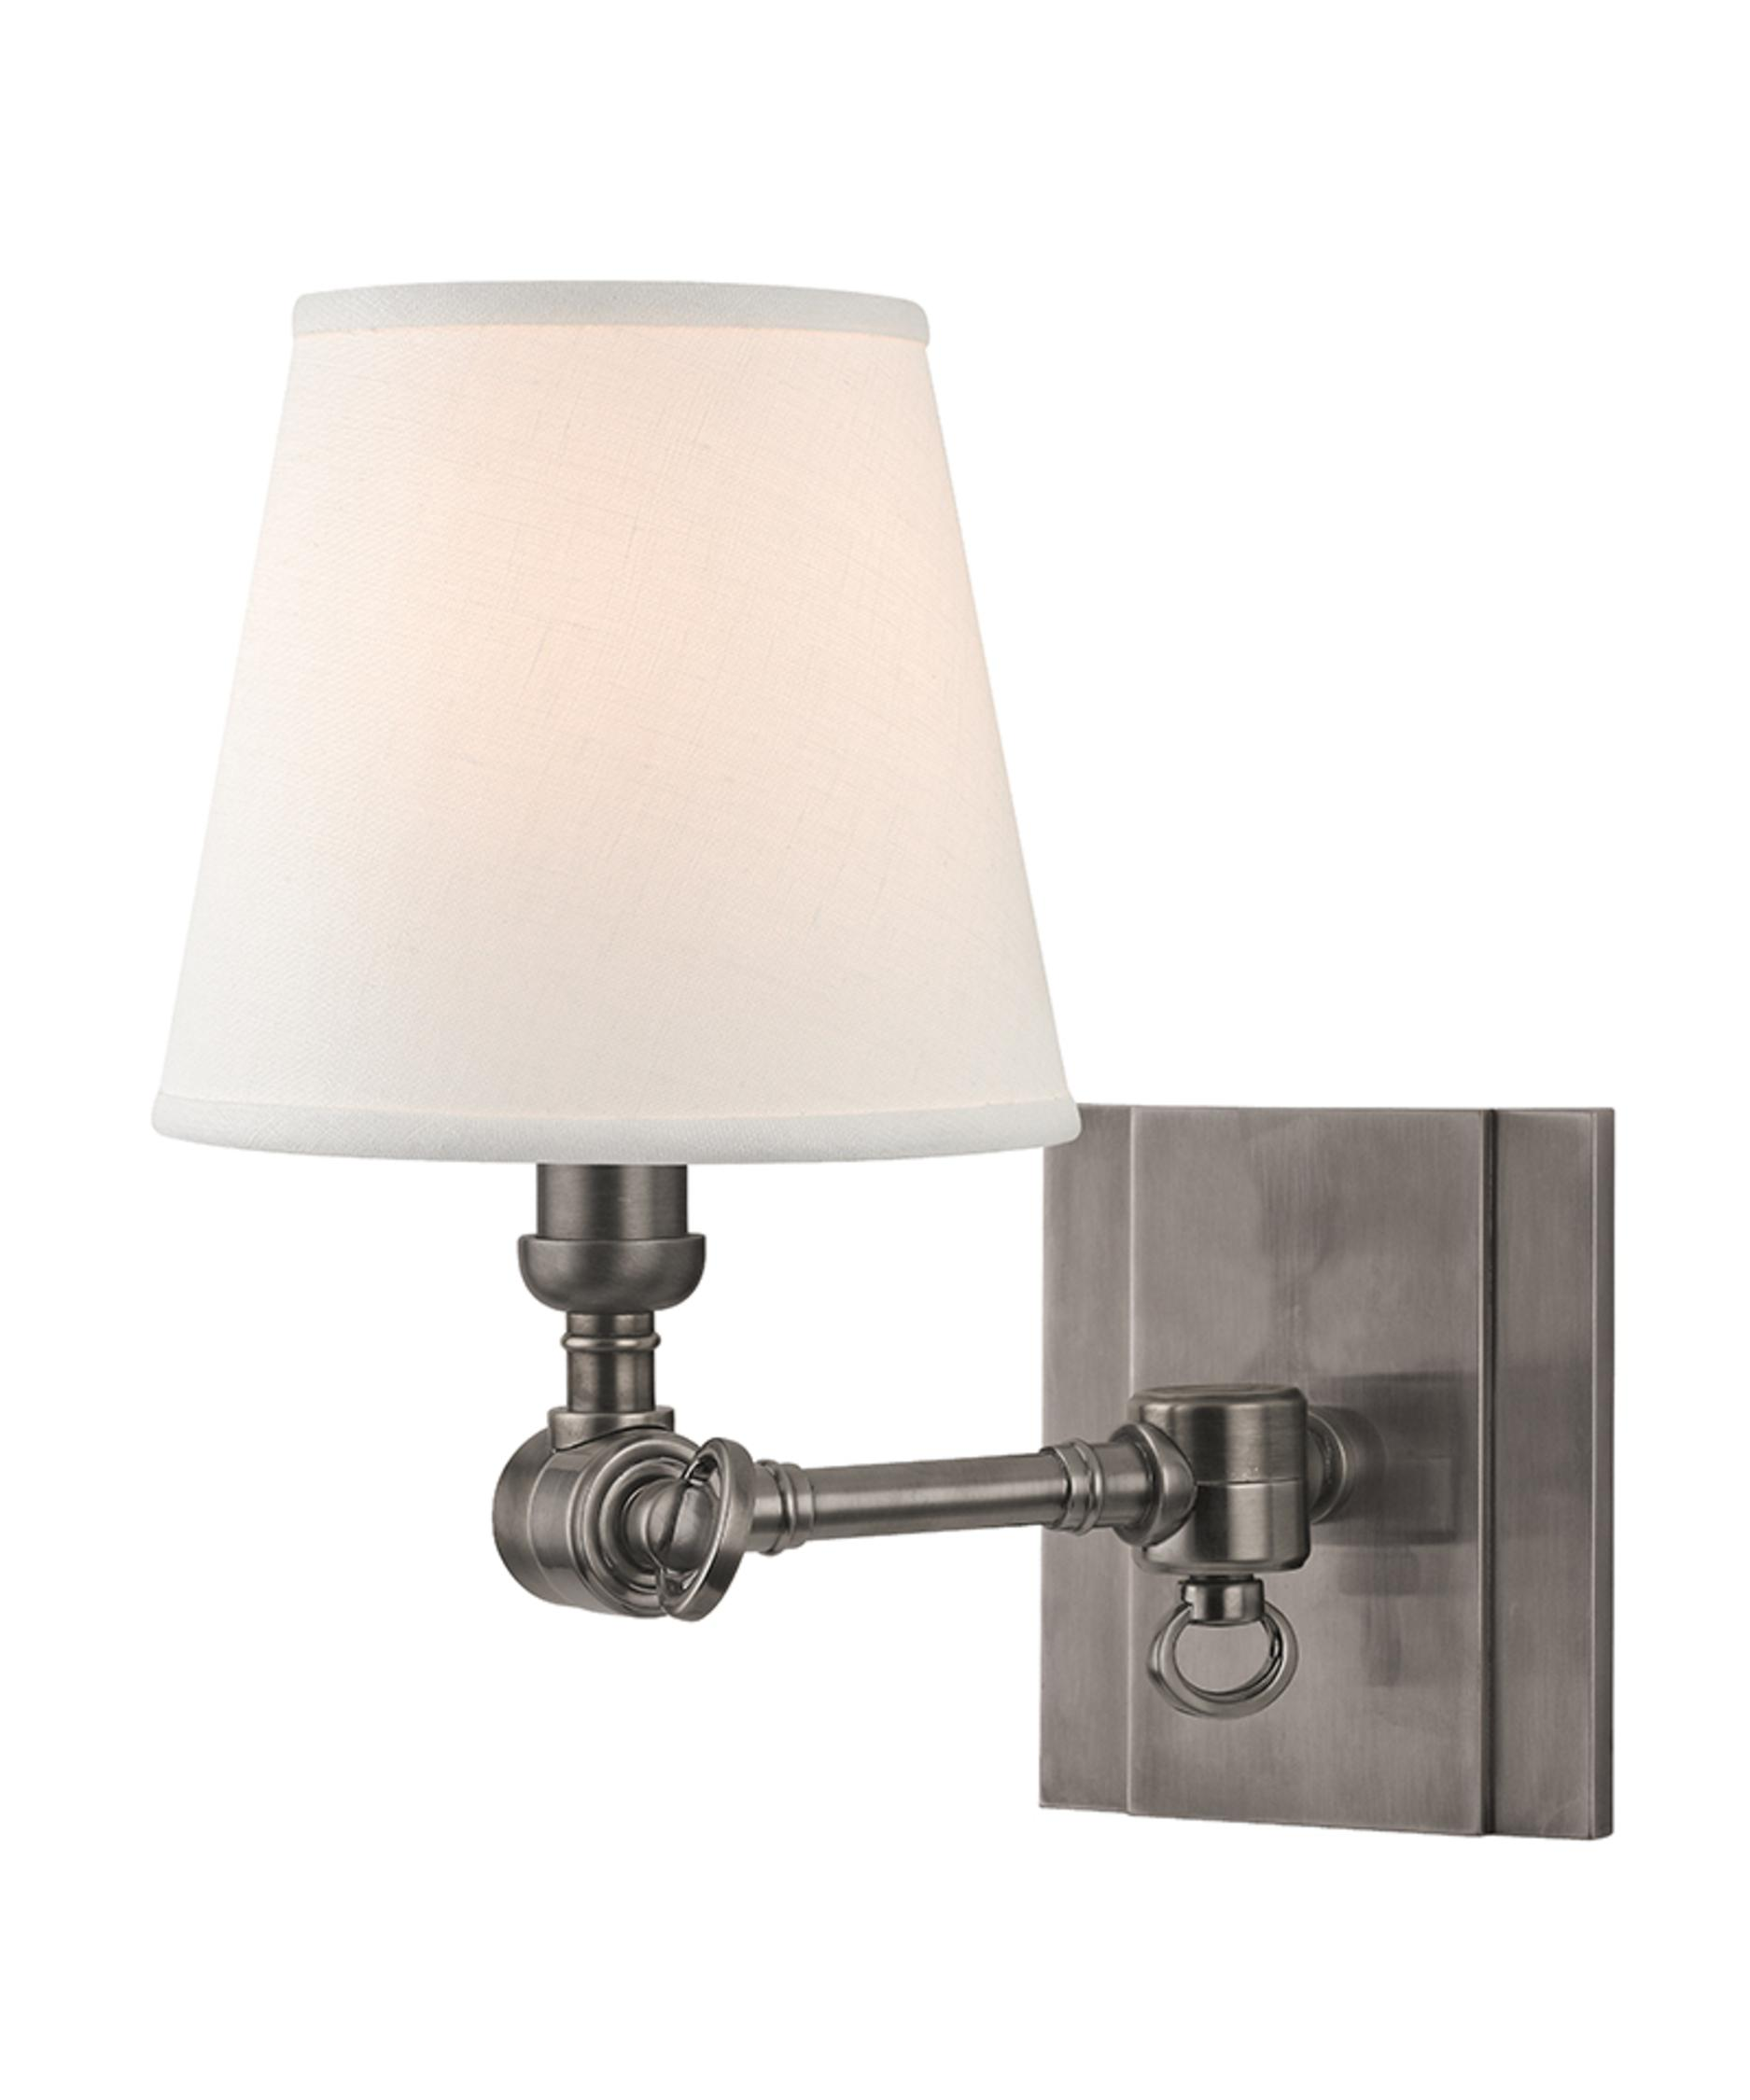 Bathroom Lighting Fixtures Brass hudson valley 6231 hillsdale 6 inch wide wall sconce | capitol